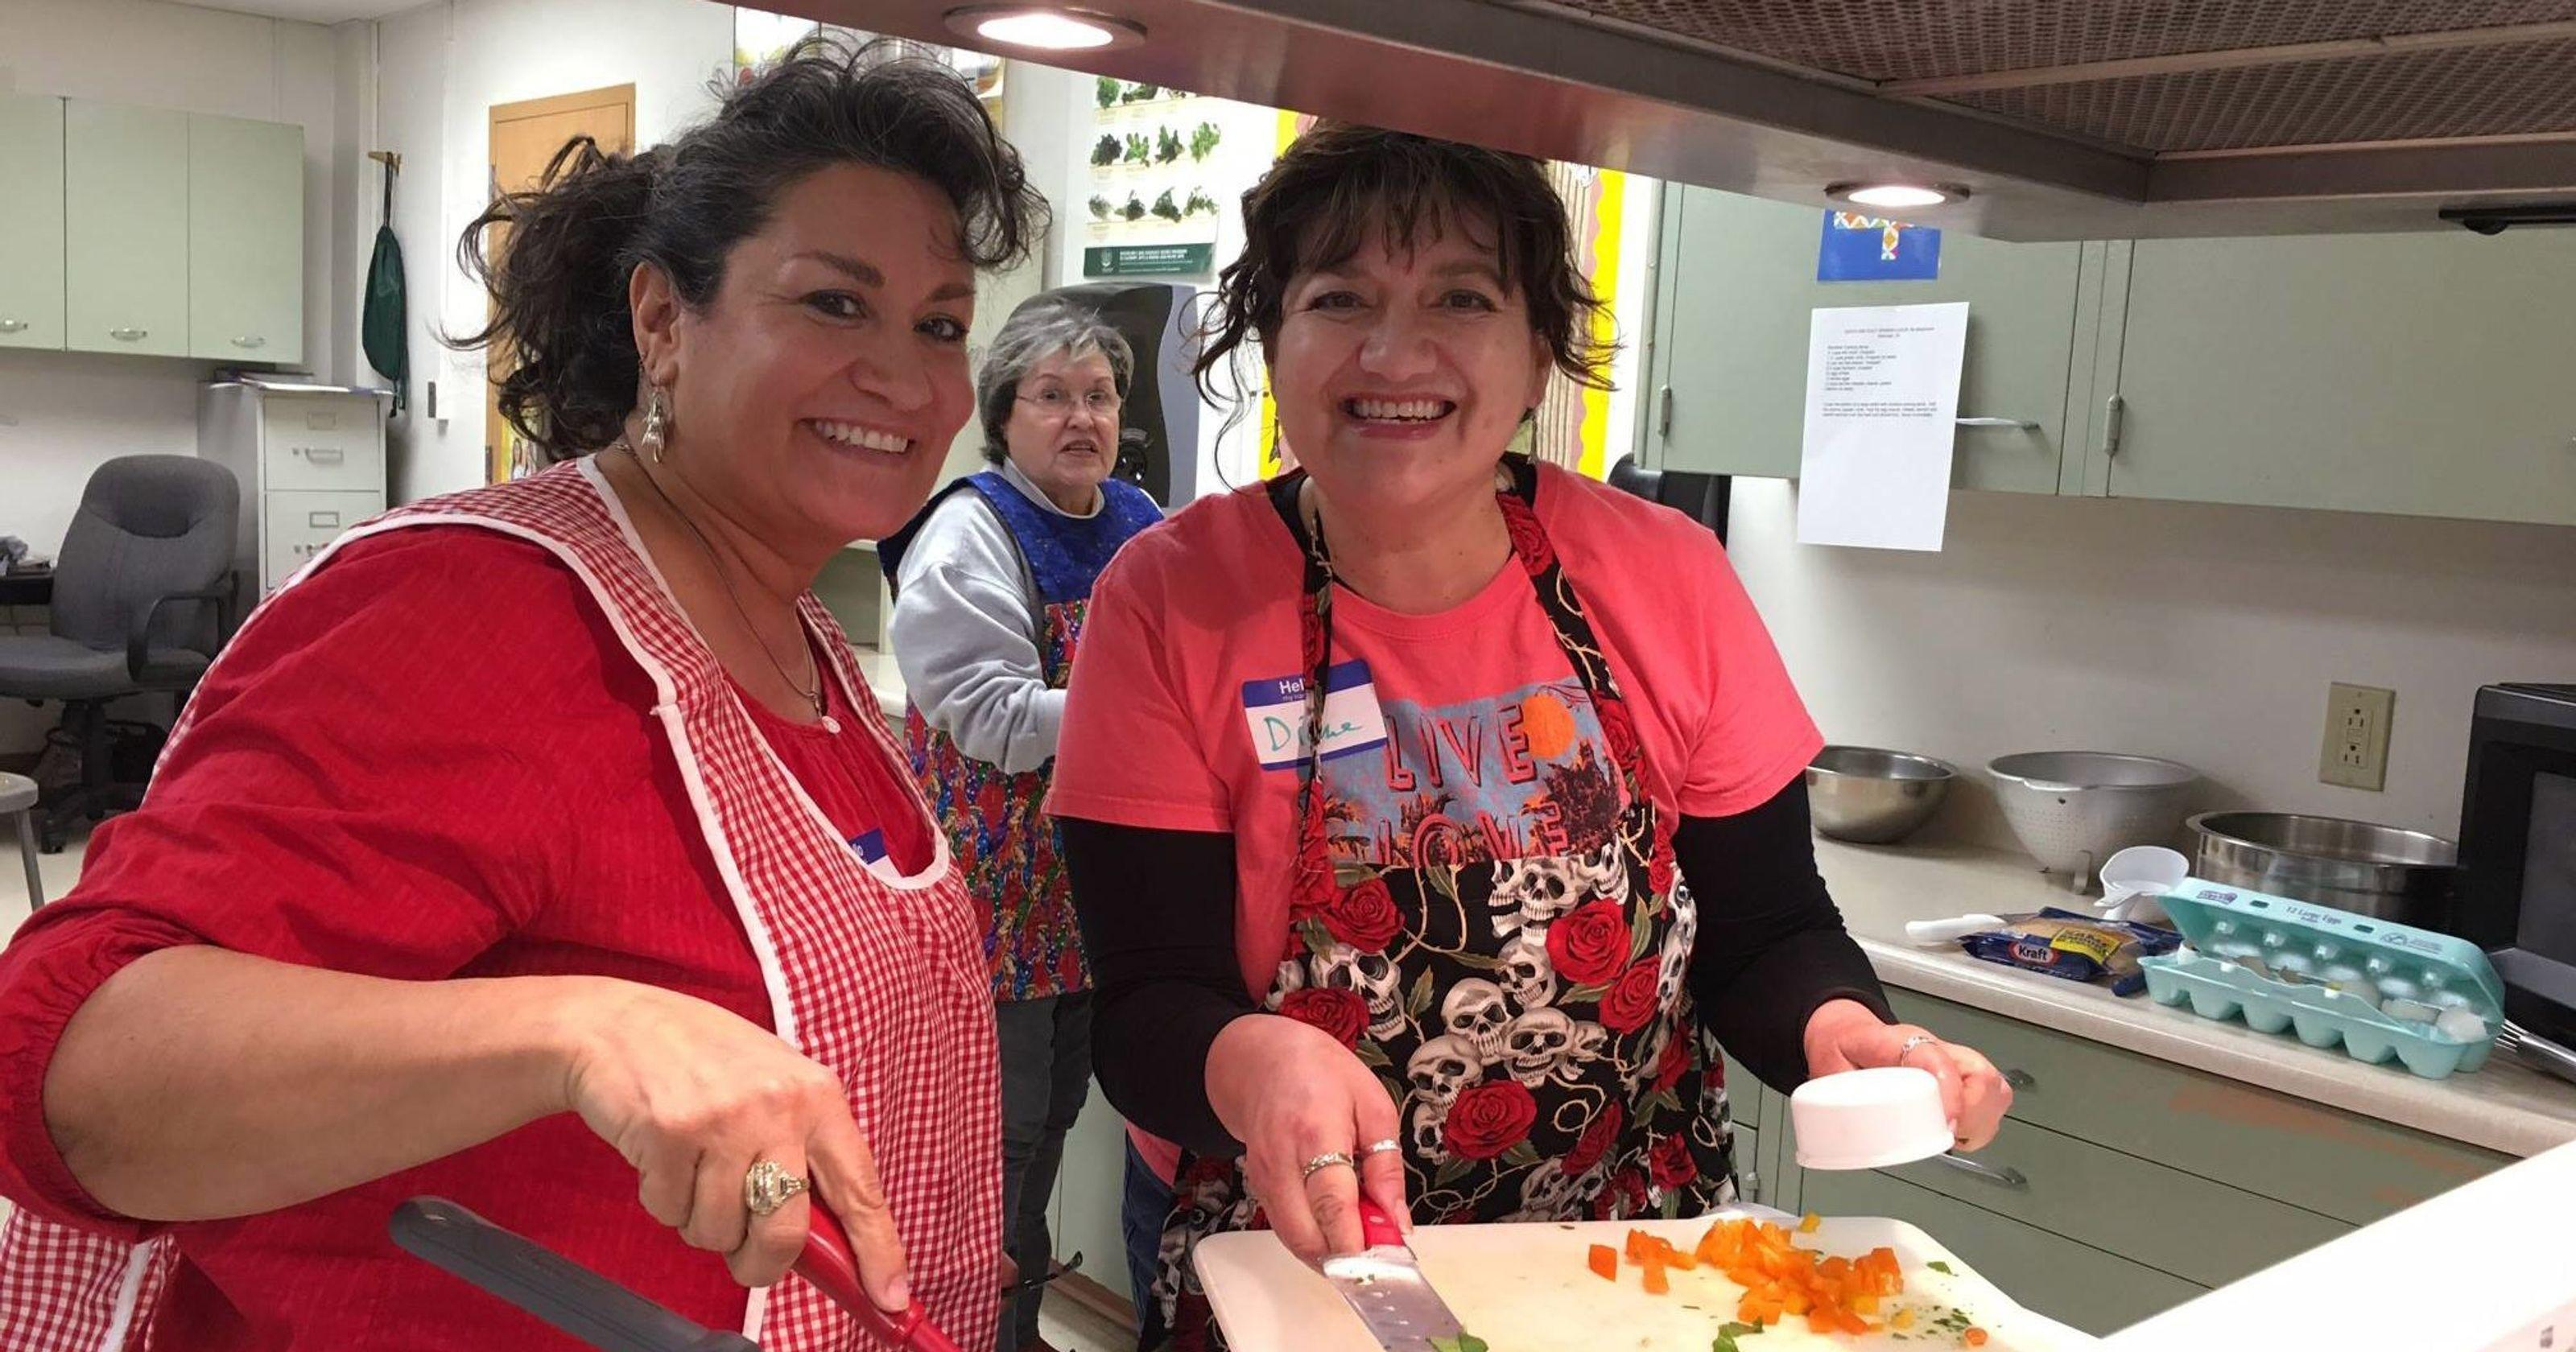 Cooking School In Las Cruces To Cater To Adults With Diabetes